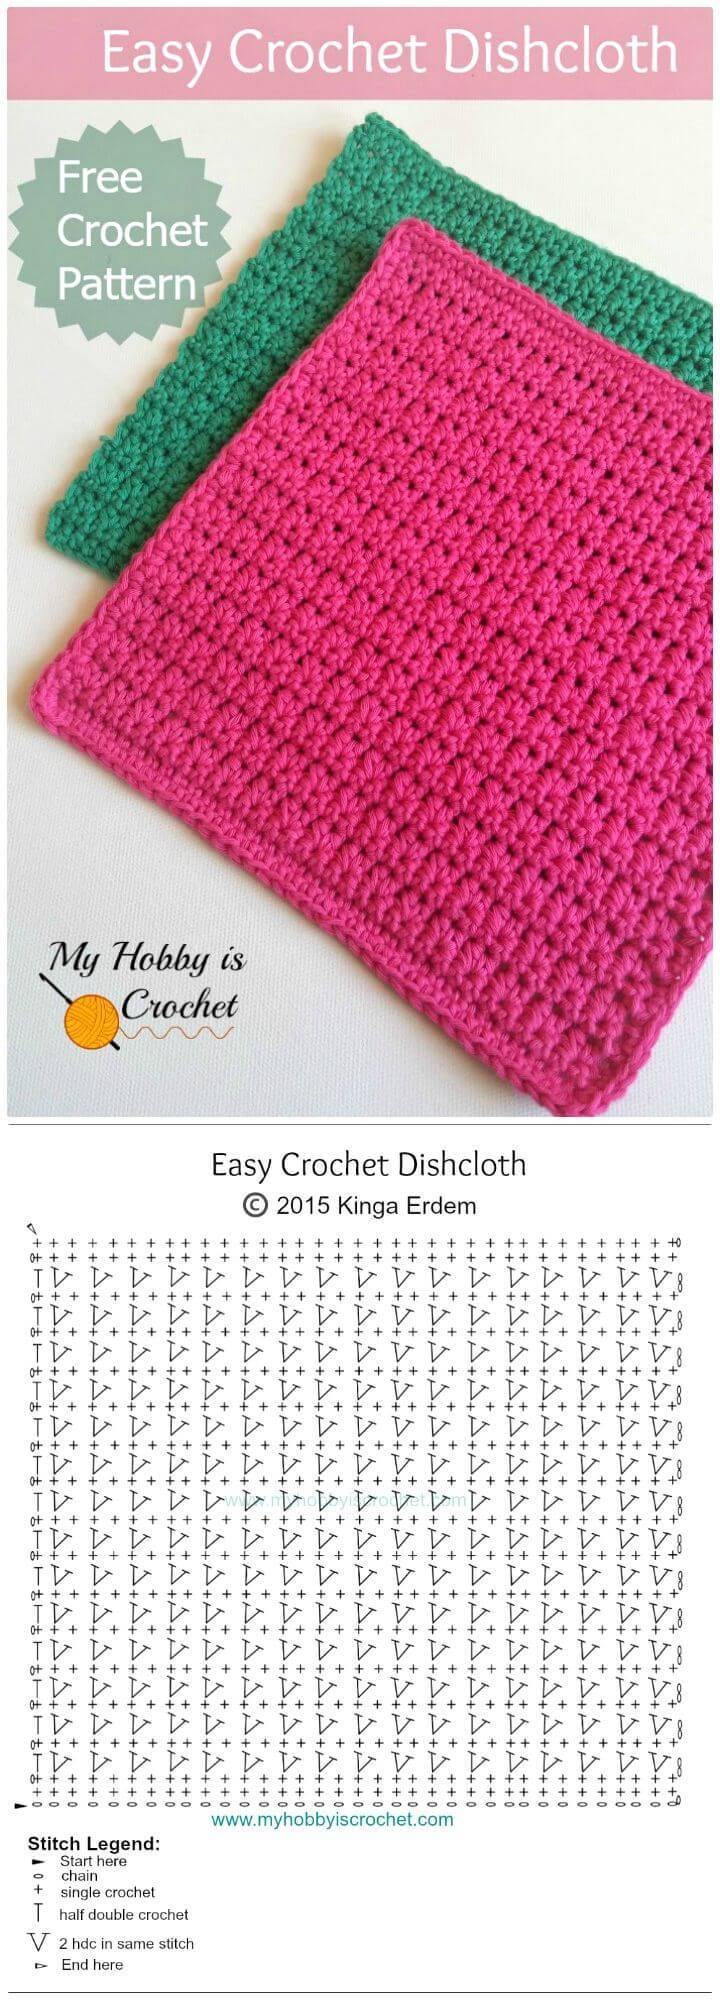 Easy Crochet Red Dishcloth - Free Crochet Pattern